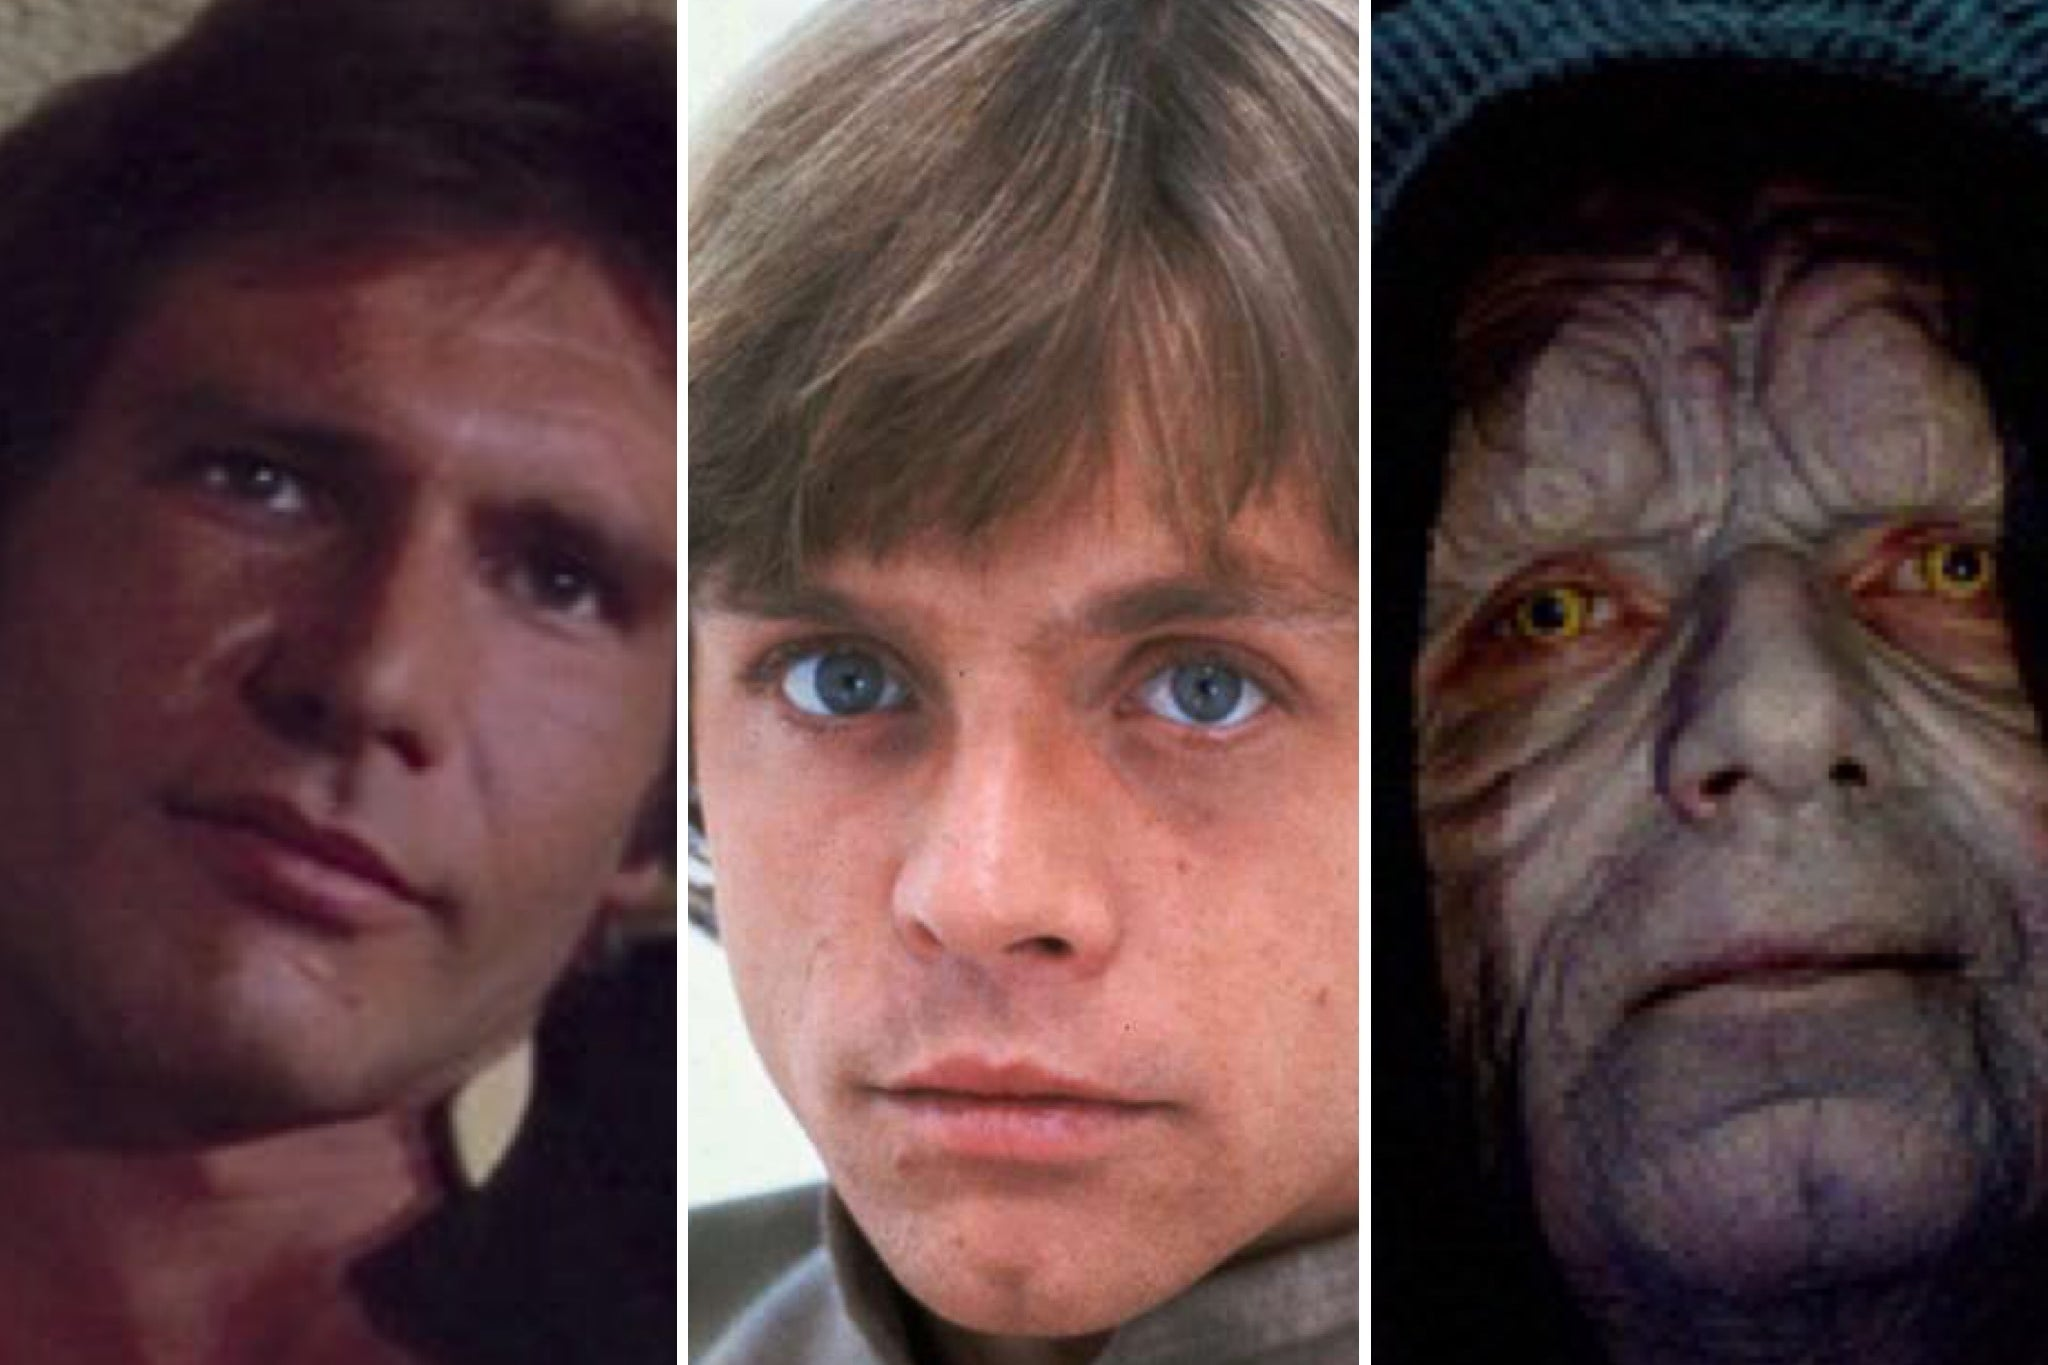 Are You A Solo, Skywalker, Or Palpatine?